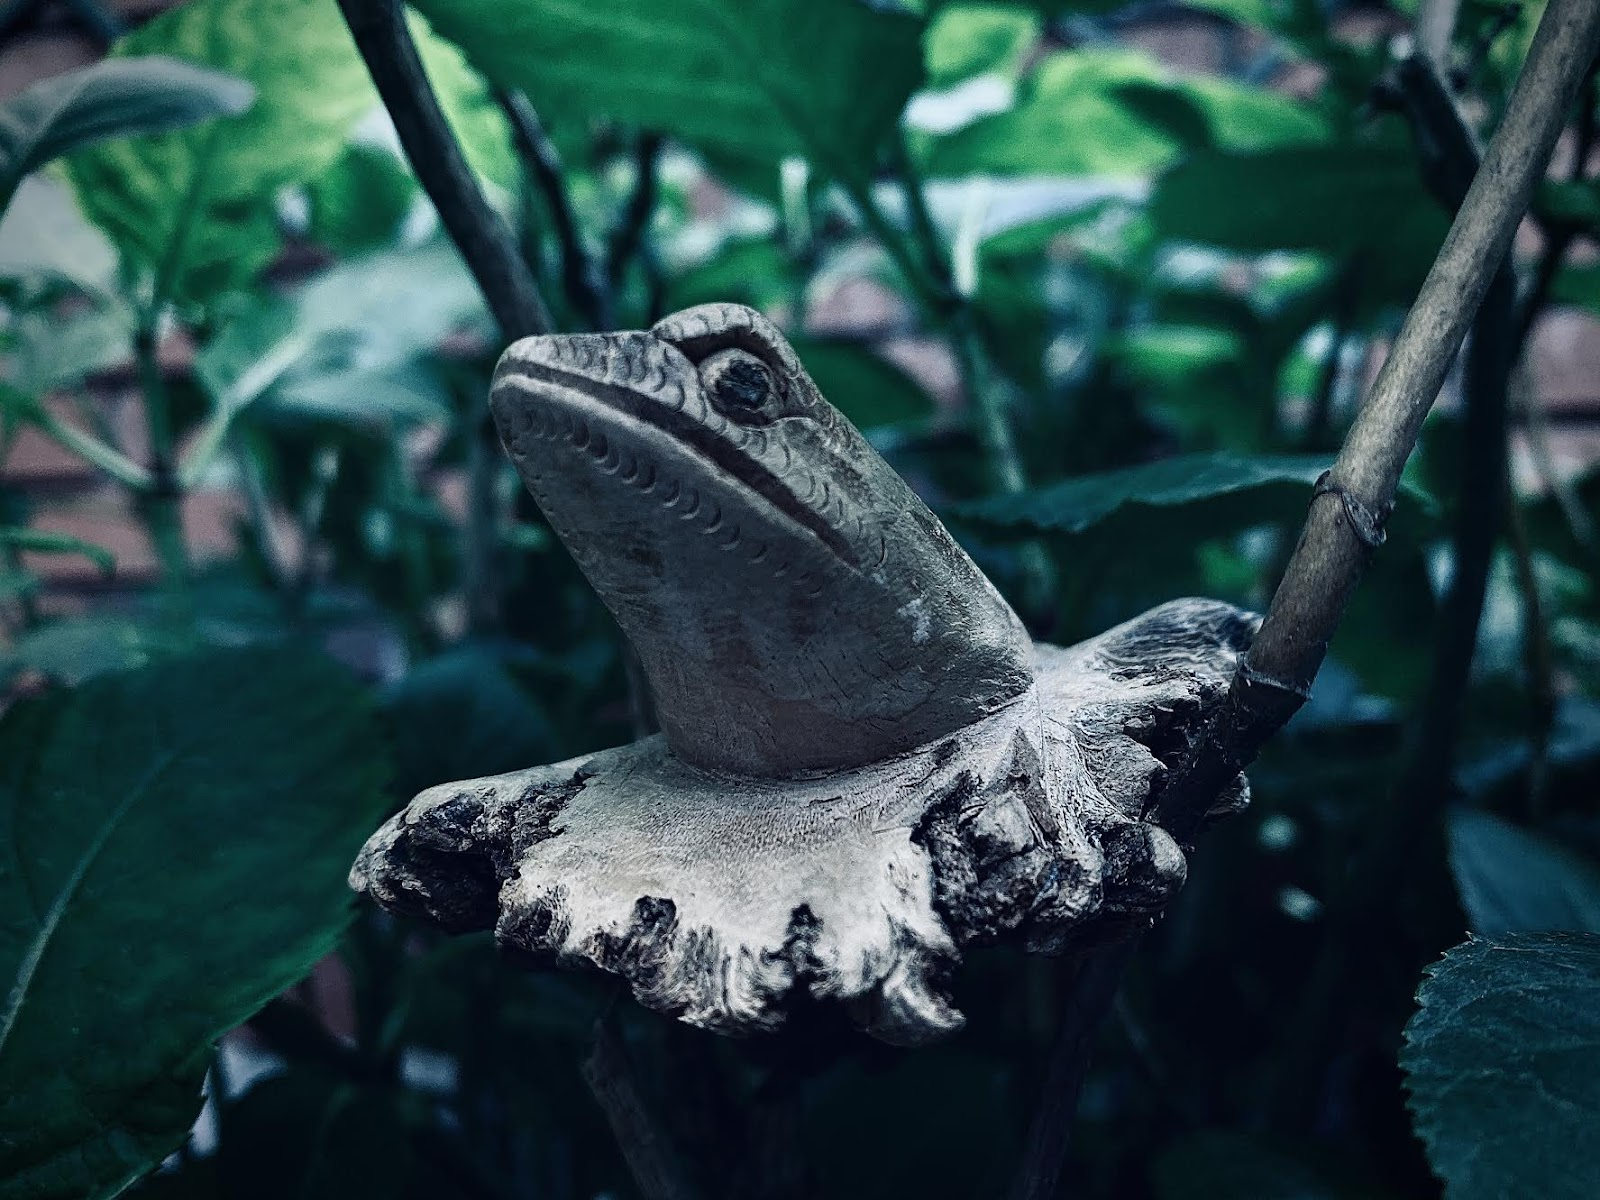 Reverse Frog: More than Just a Dream?